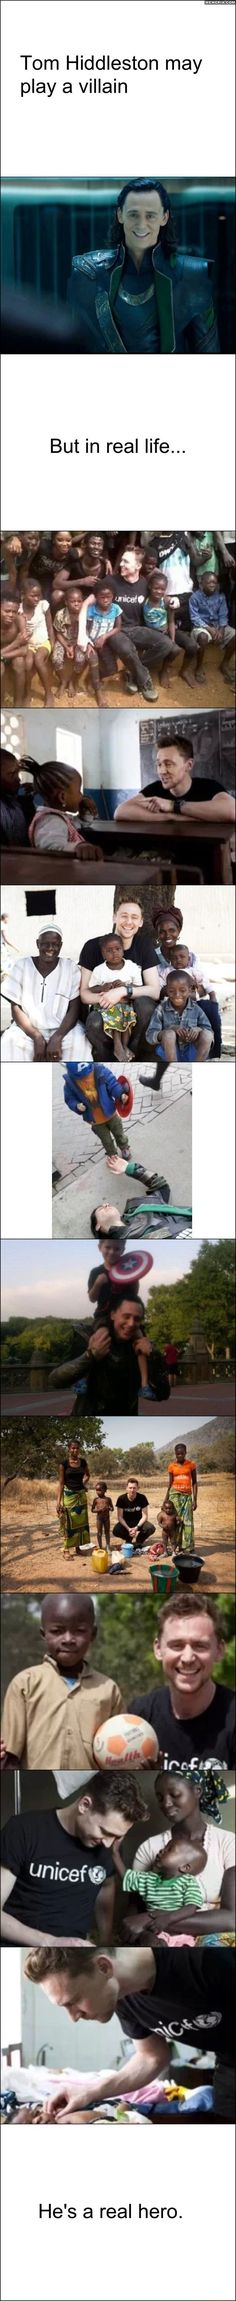 Movie villain is a real hero. I just love this.